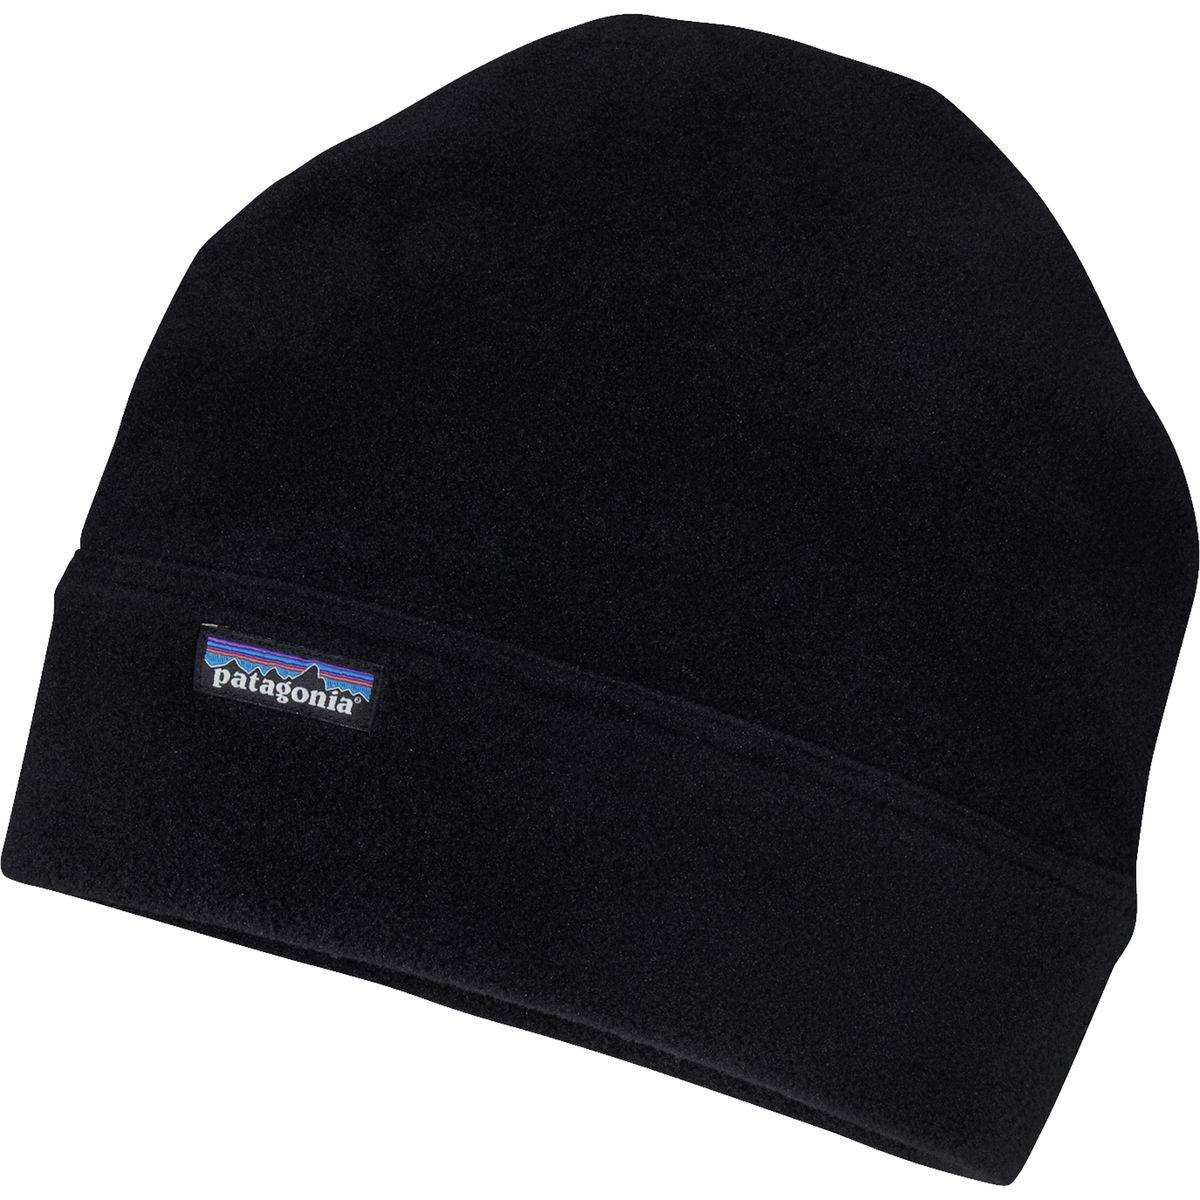 Lyst - Patagonia Synch Alpine Hat in Black for Men 17faeef88fe